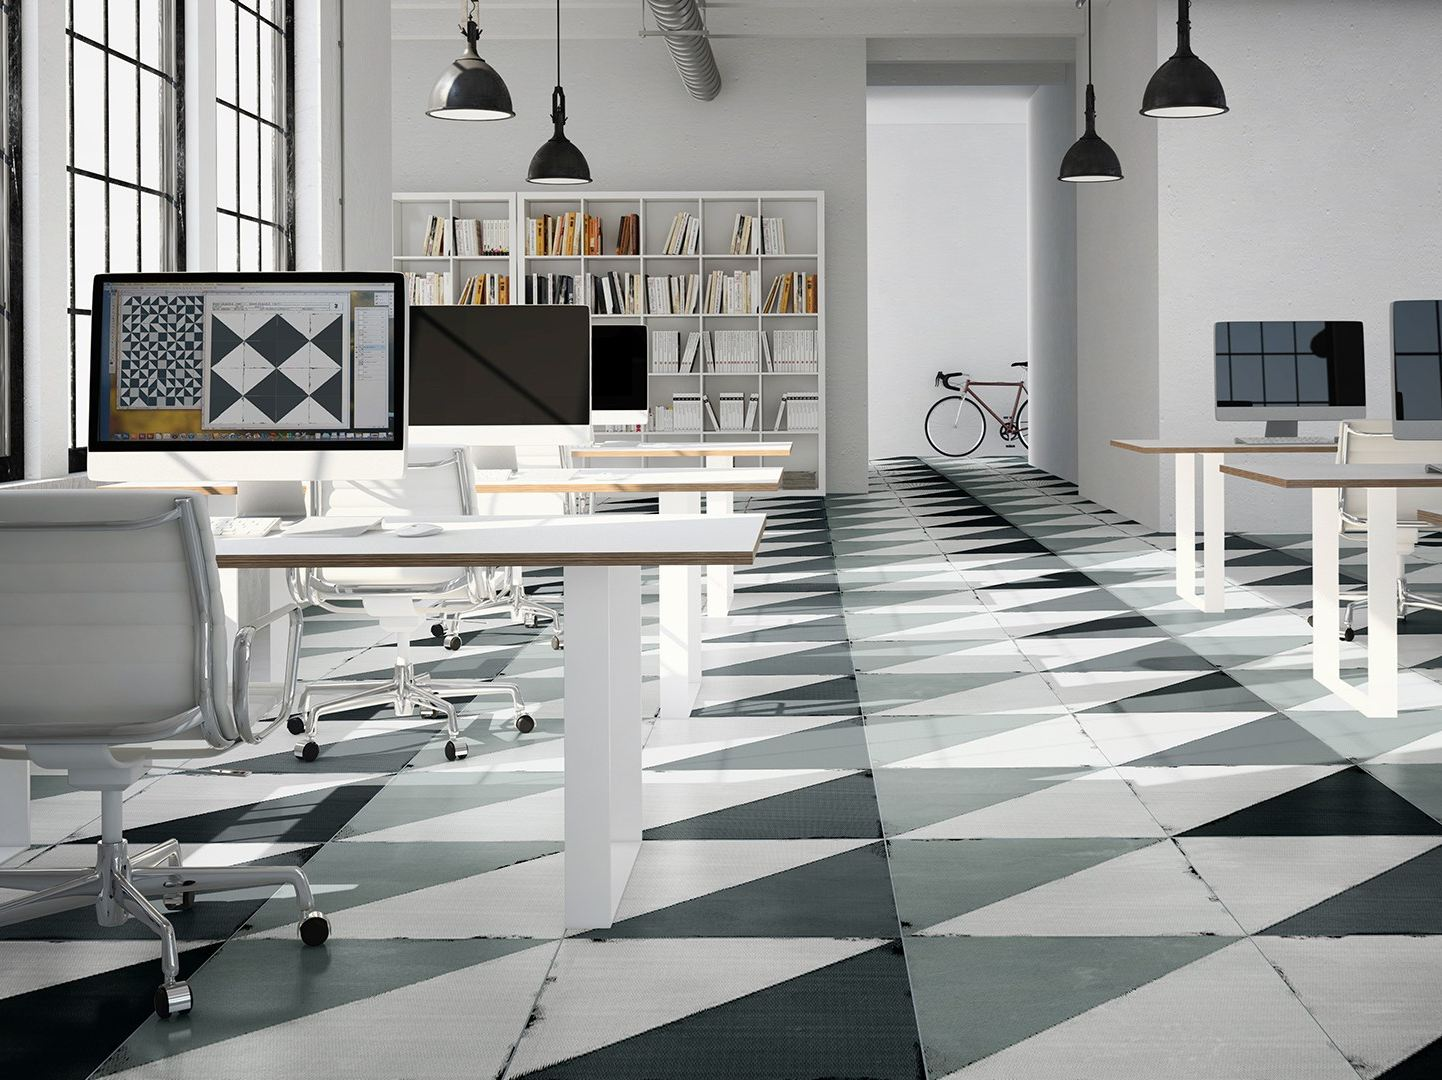 White porcelain tile flooring